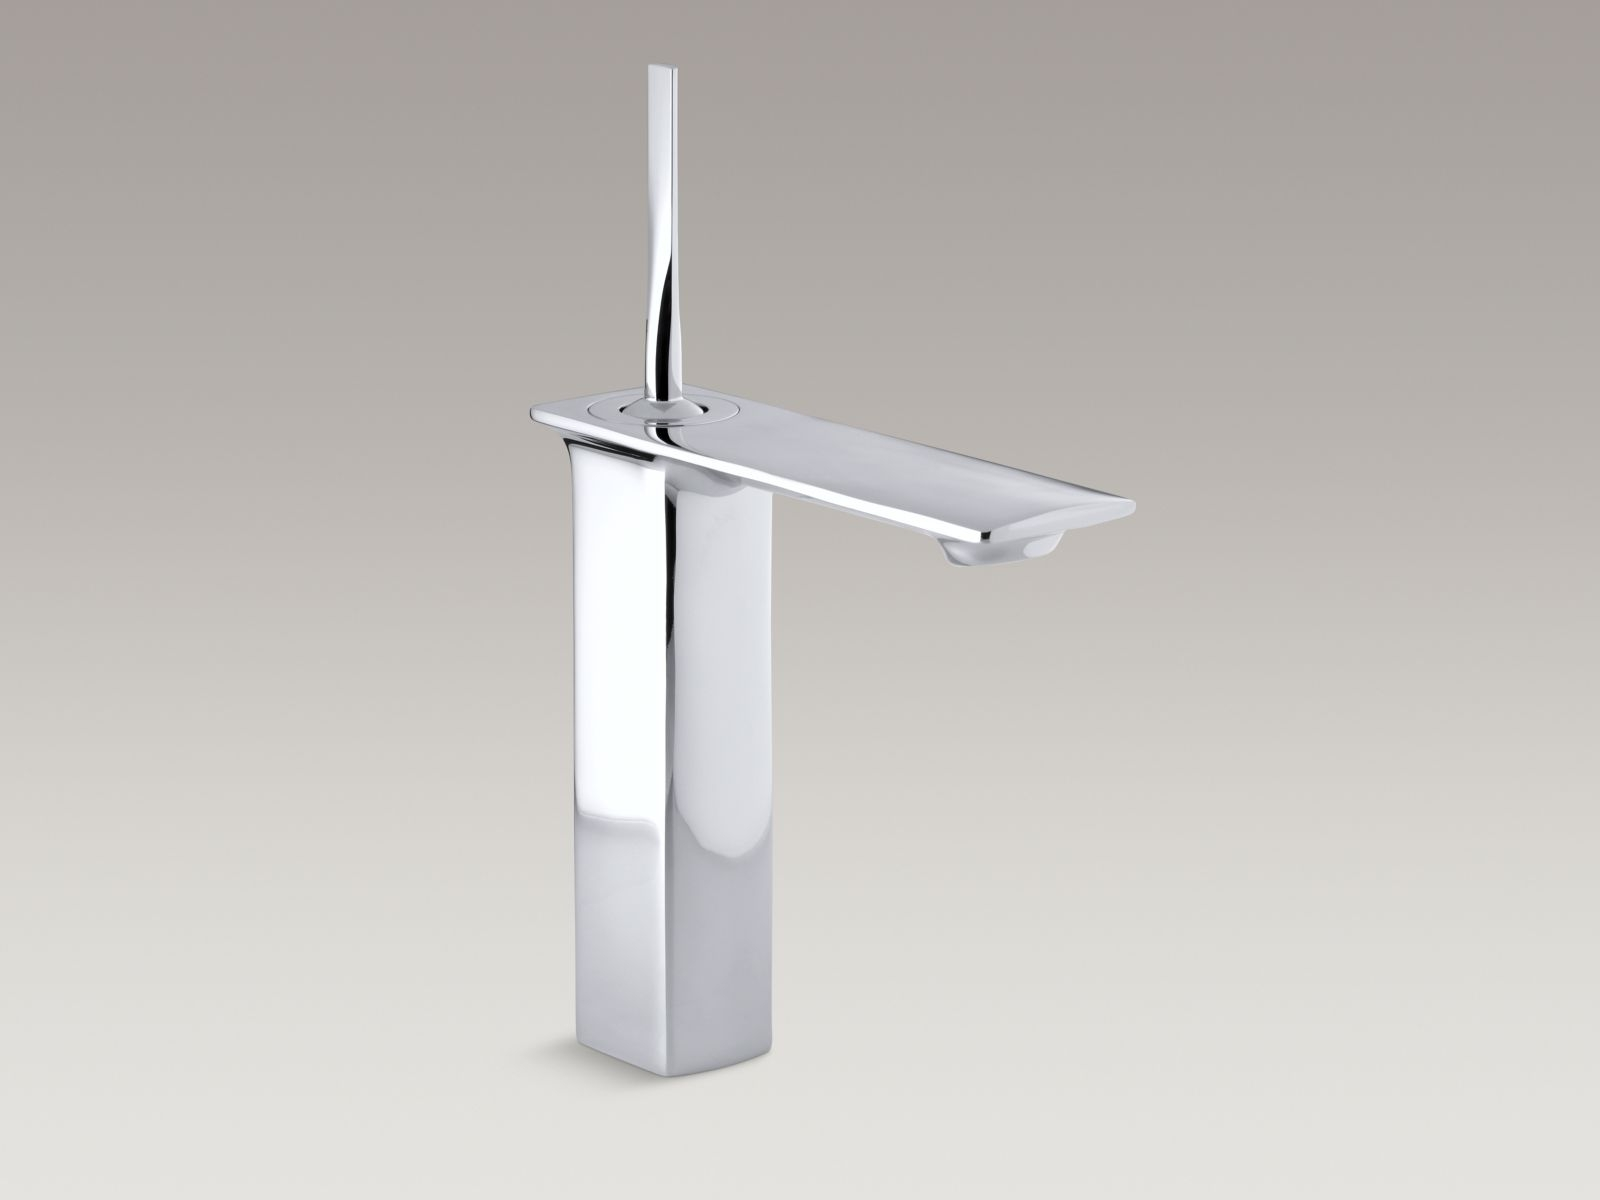 Ideas, kohler stance tall faucet kohler stance tall faucet buyplumbing category single handle bathroom faucet 1600 x 1200  .